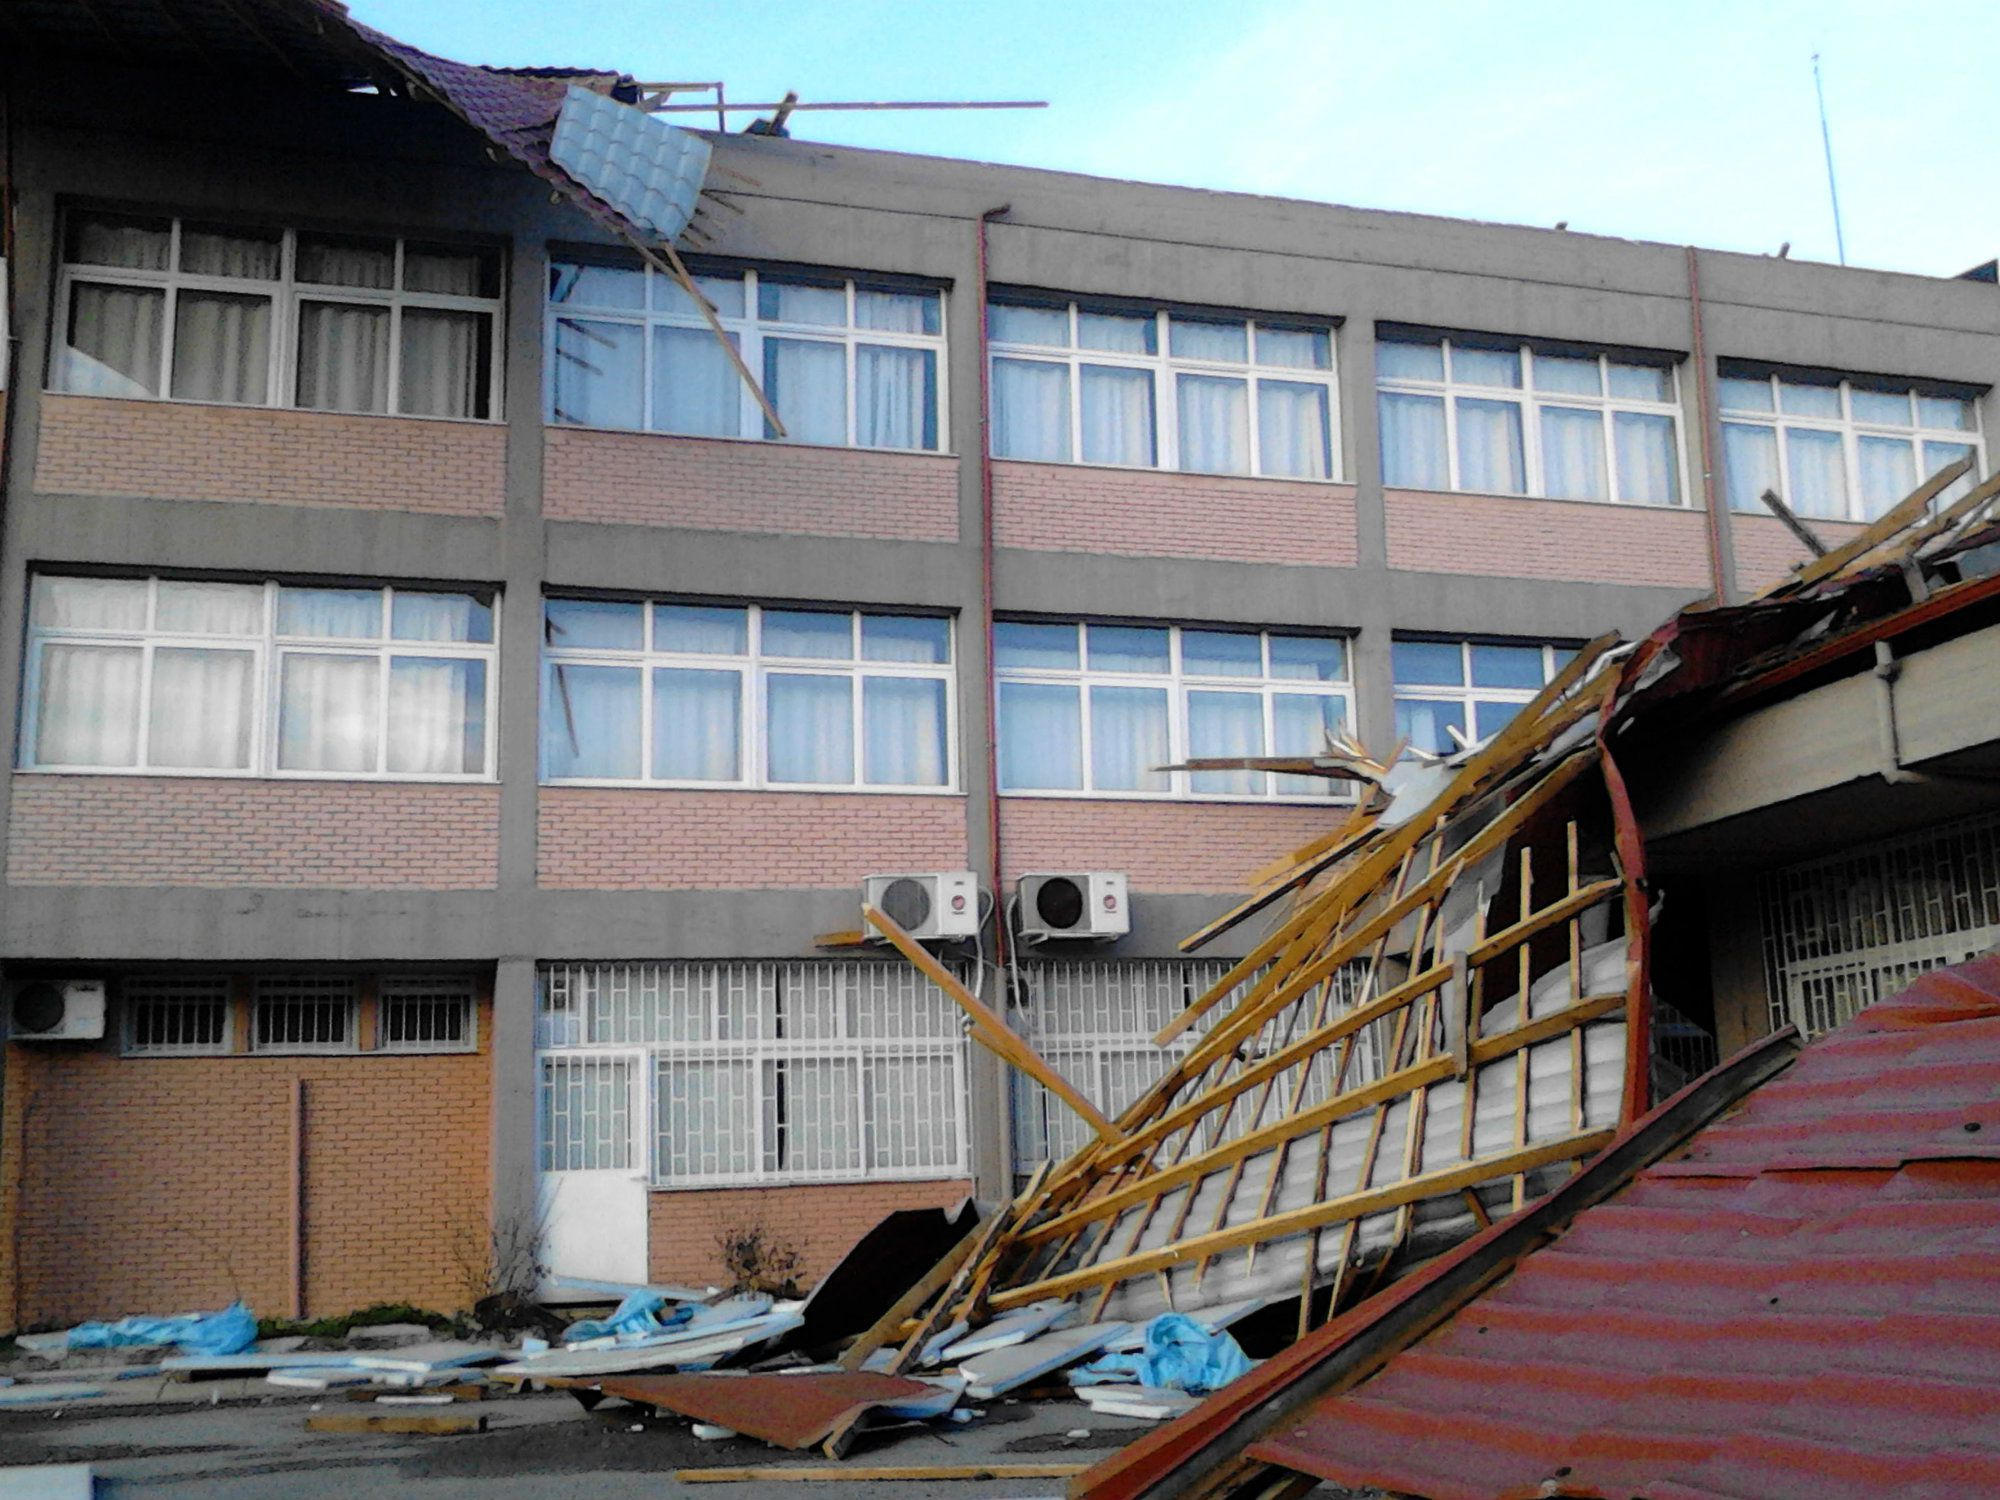 During the winter, a collapsed roof at a high school in Imathia led to extensive rain and electrical damage. It has been temporarily repaired, but is still not fully fixed.